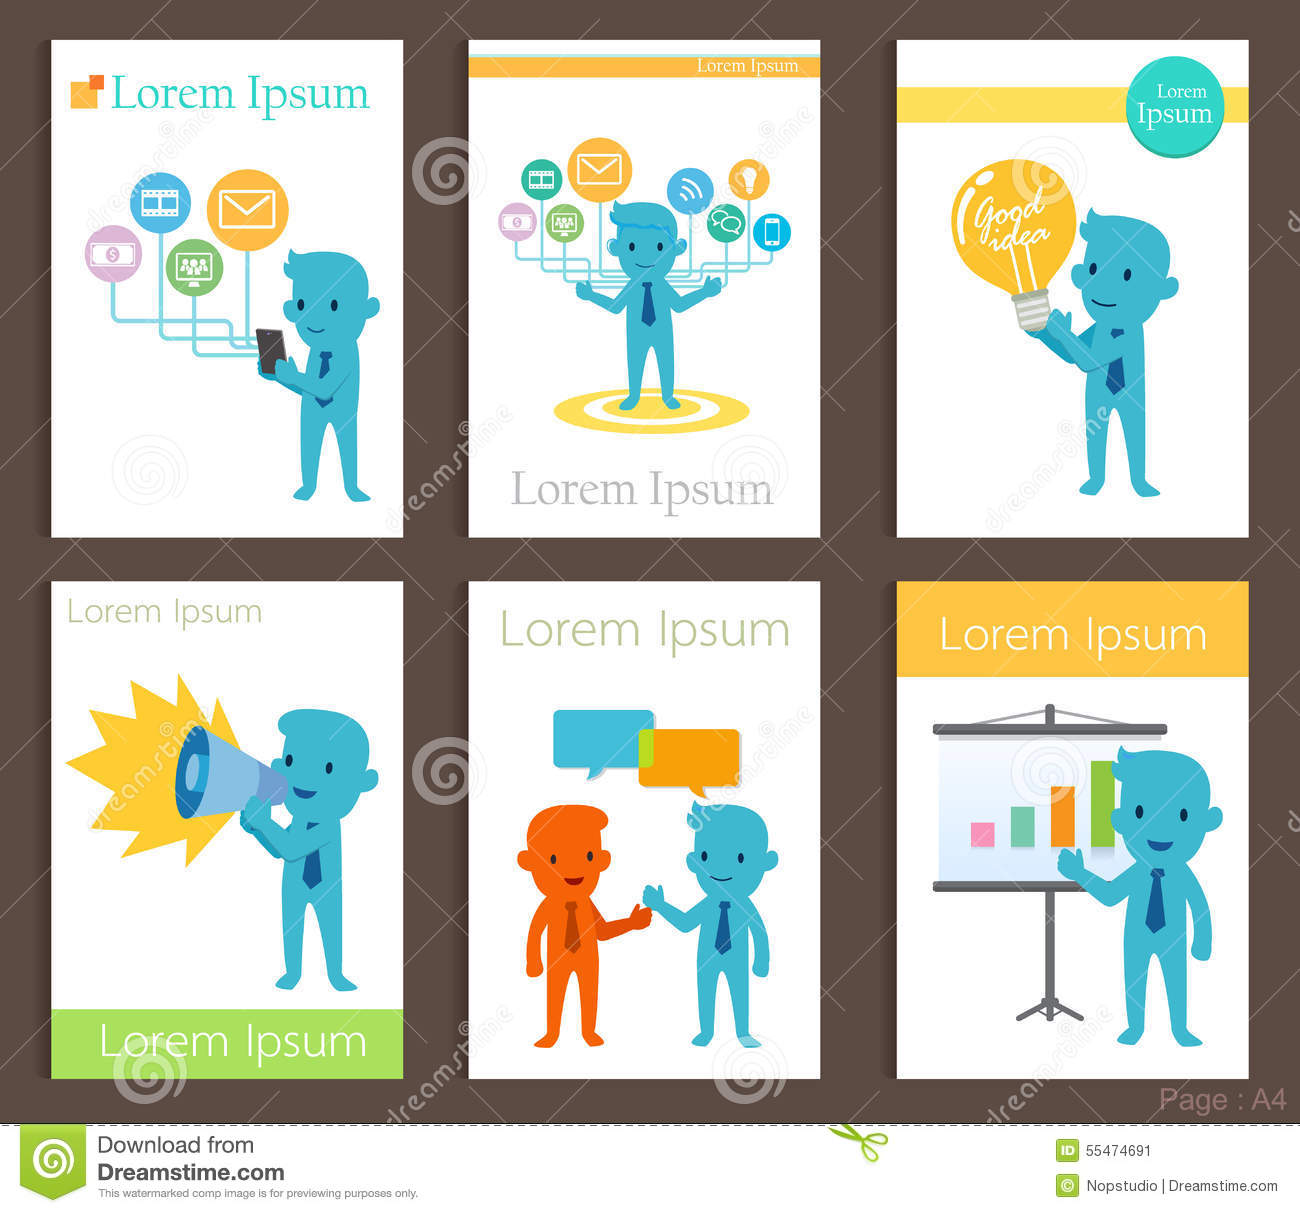 Set of brochure design business communication templates stock vector set of brochure design business communication templates stock vector illustration of entertainment background 55474691 wajeb Choice Image